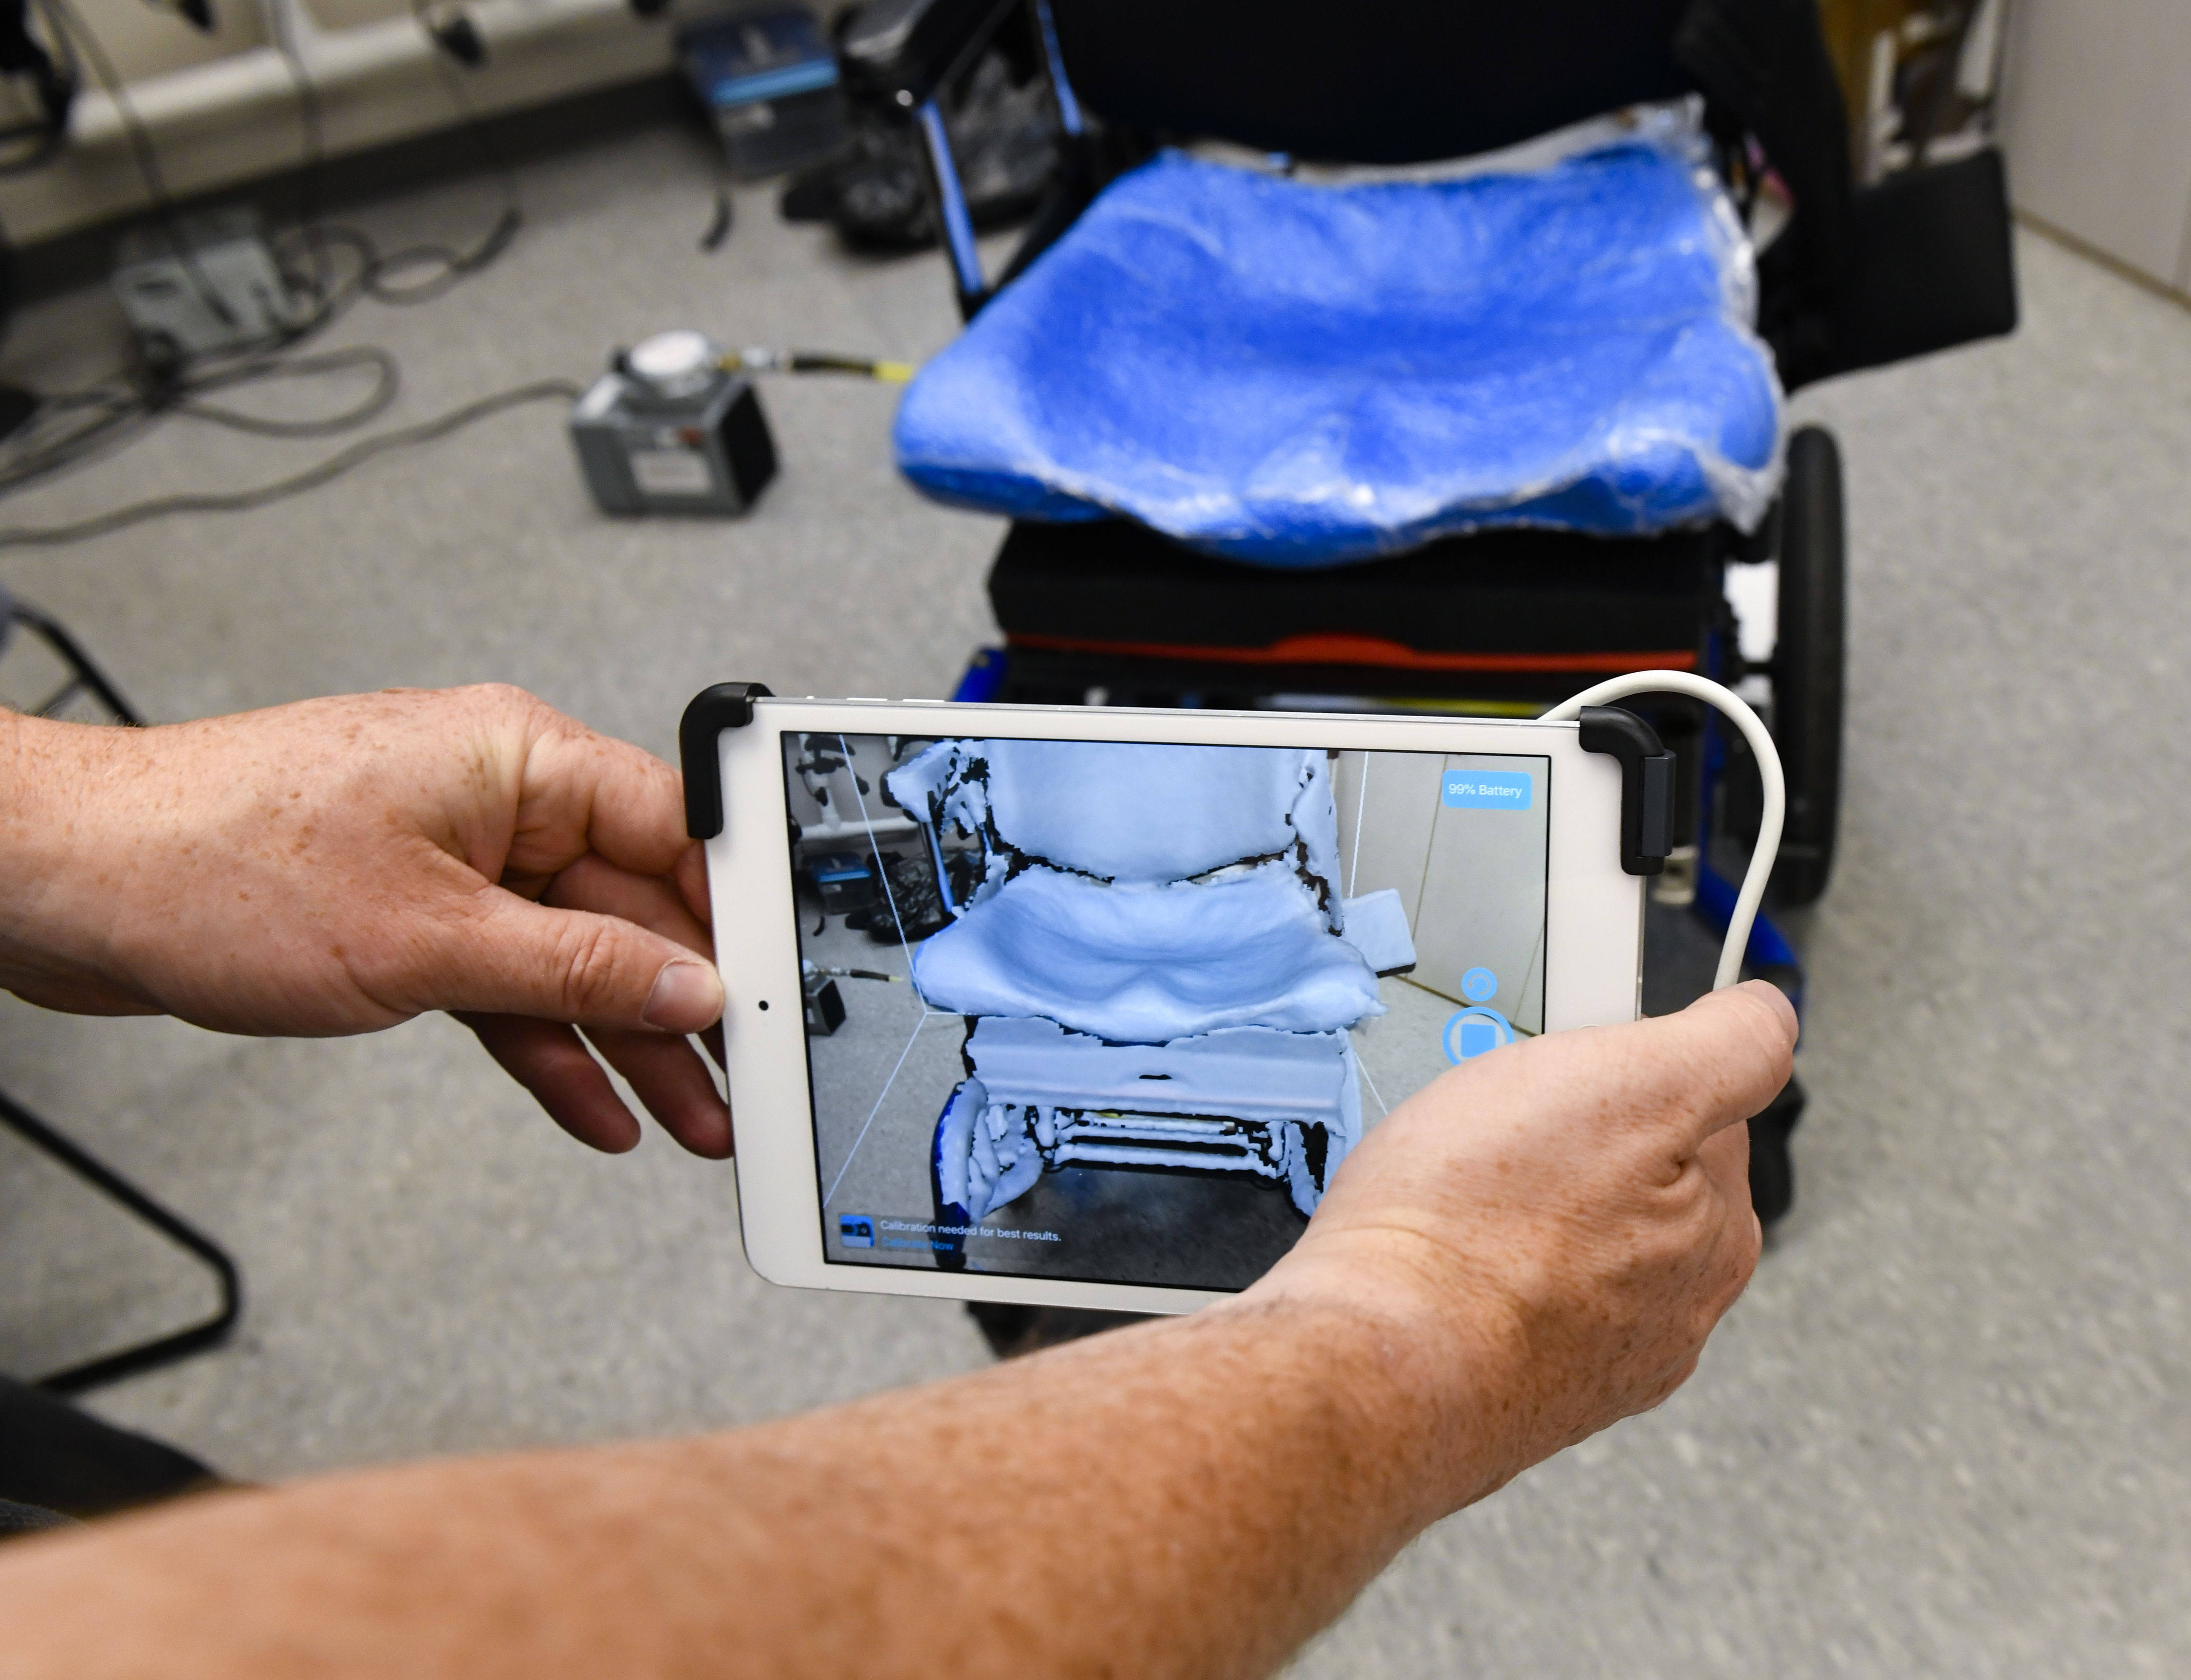 a custom wheelchair  seat mold is visualized using an ipad